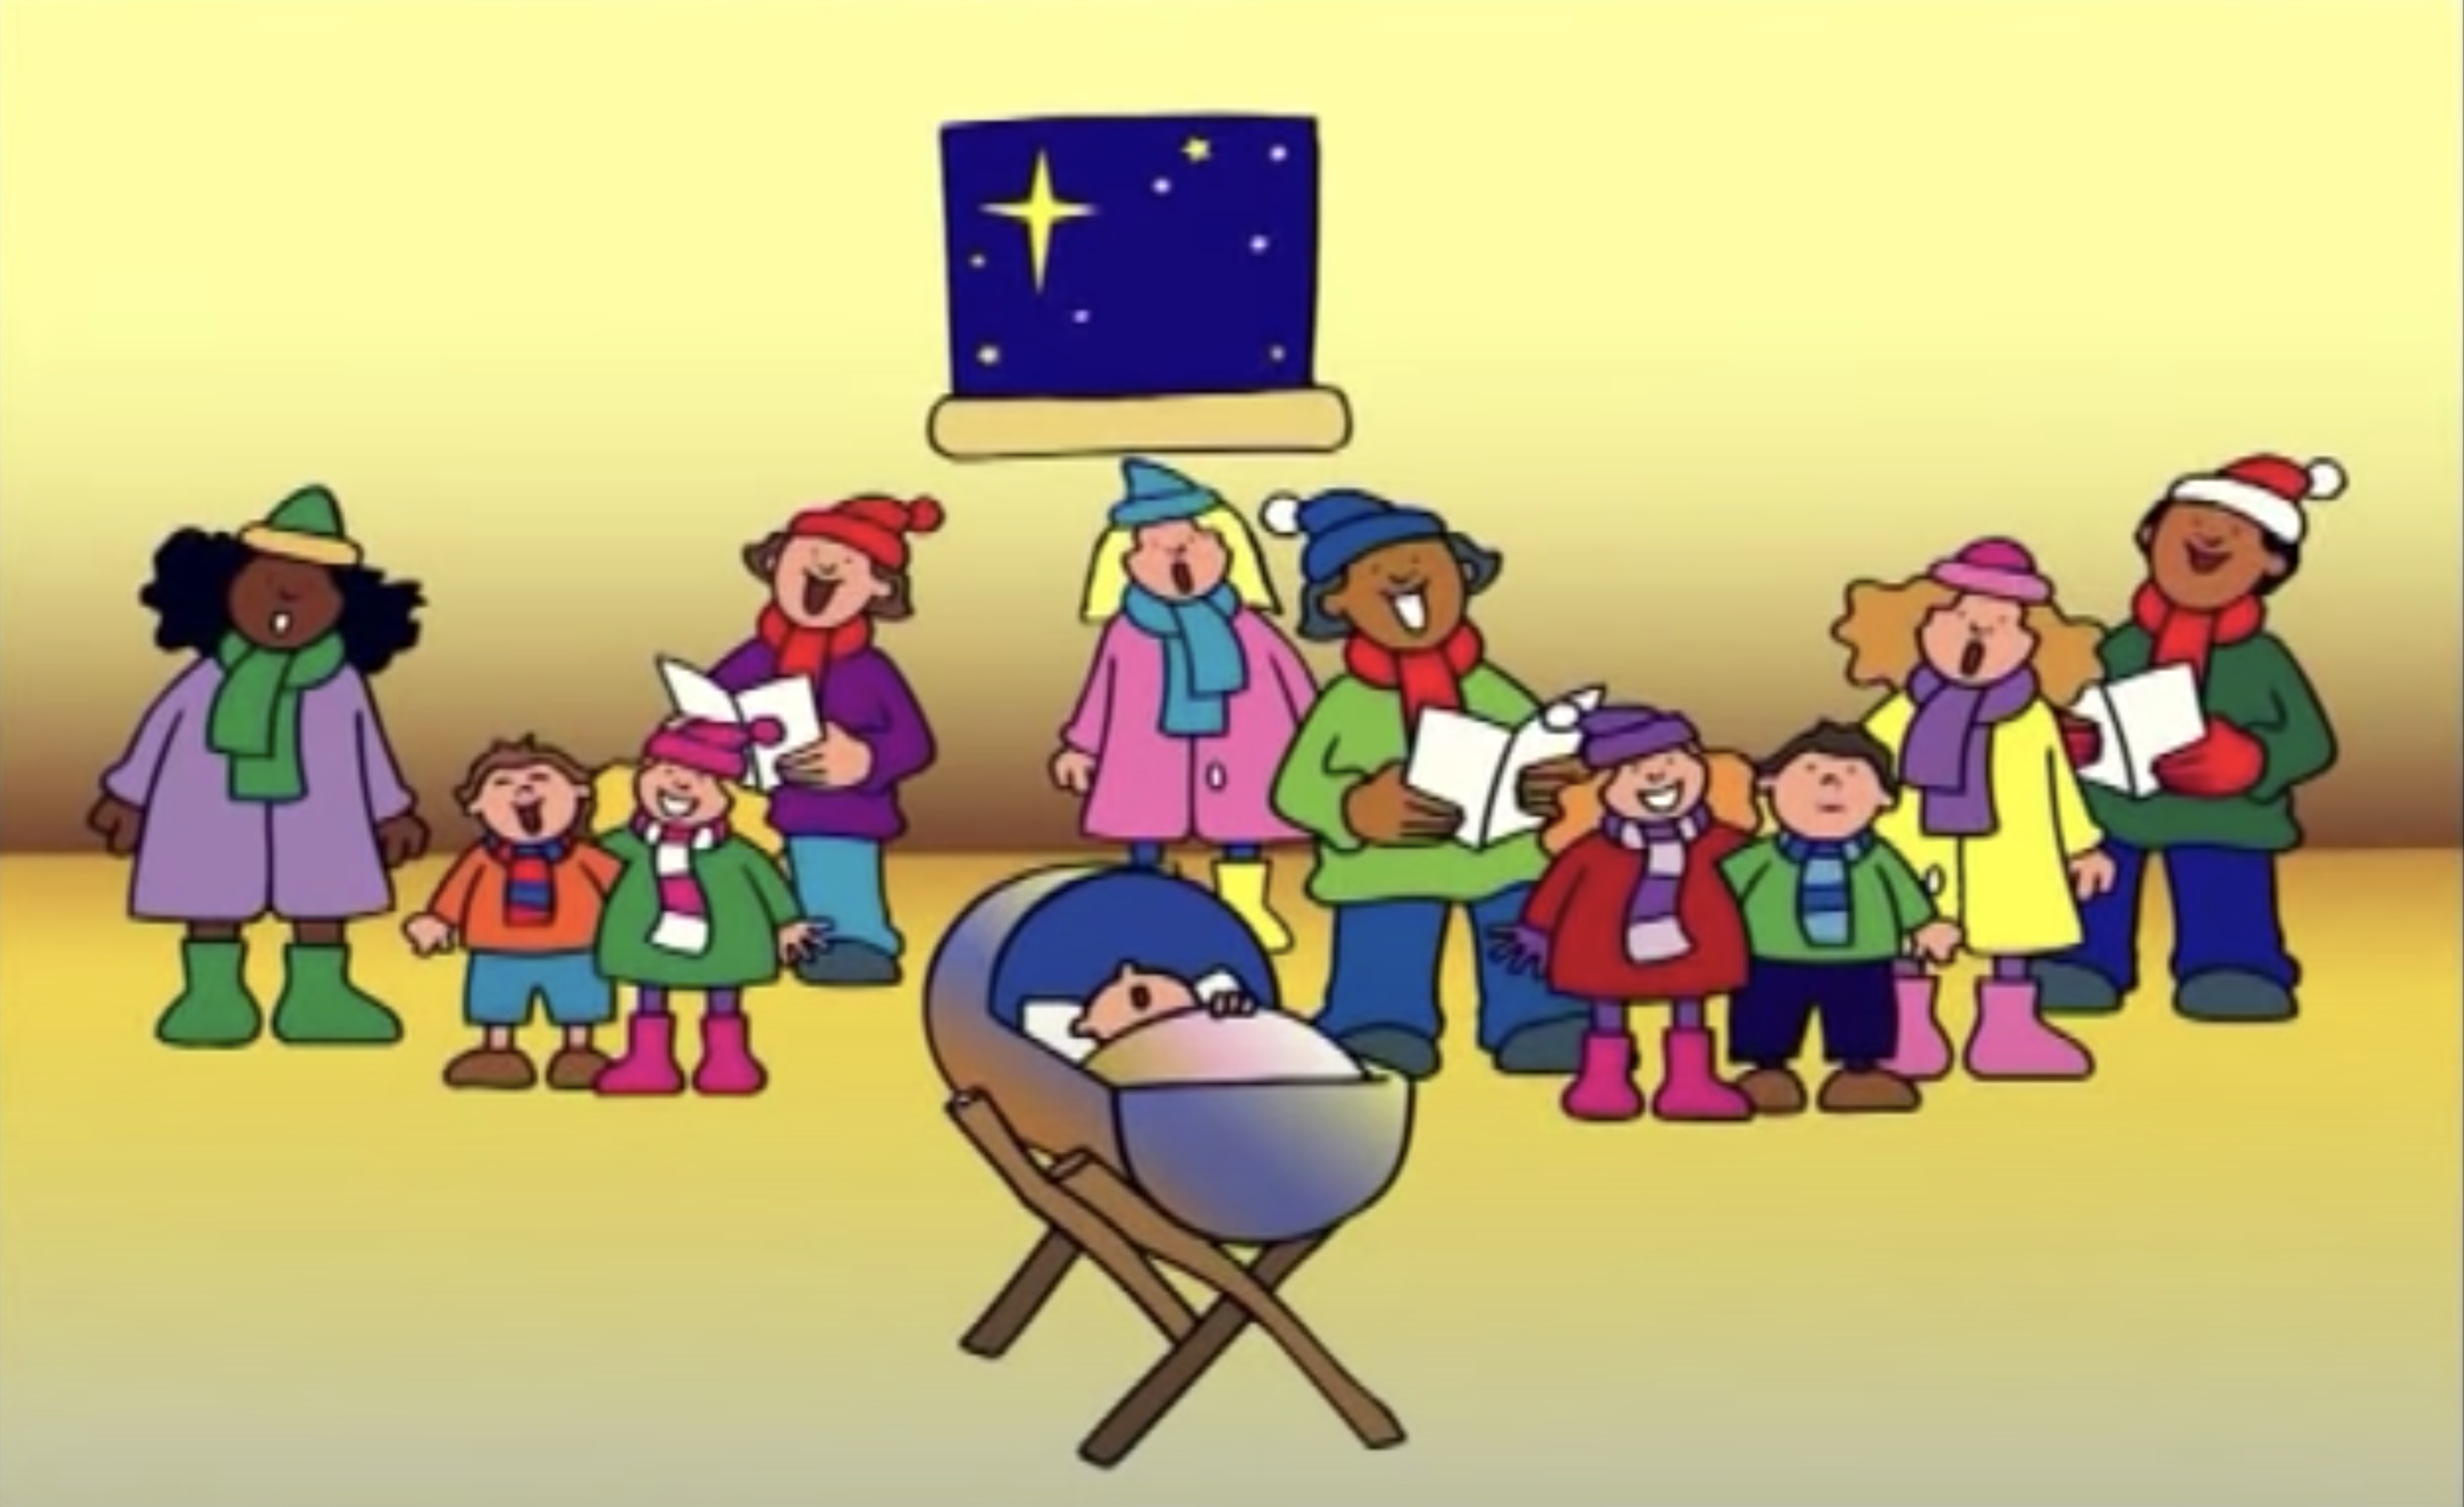 Digital Online Christmas Festival 2020 - Videos Especially for Children - Away in a Manger ANSWERS